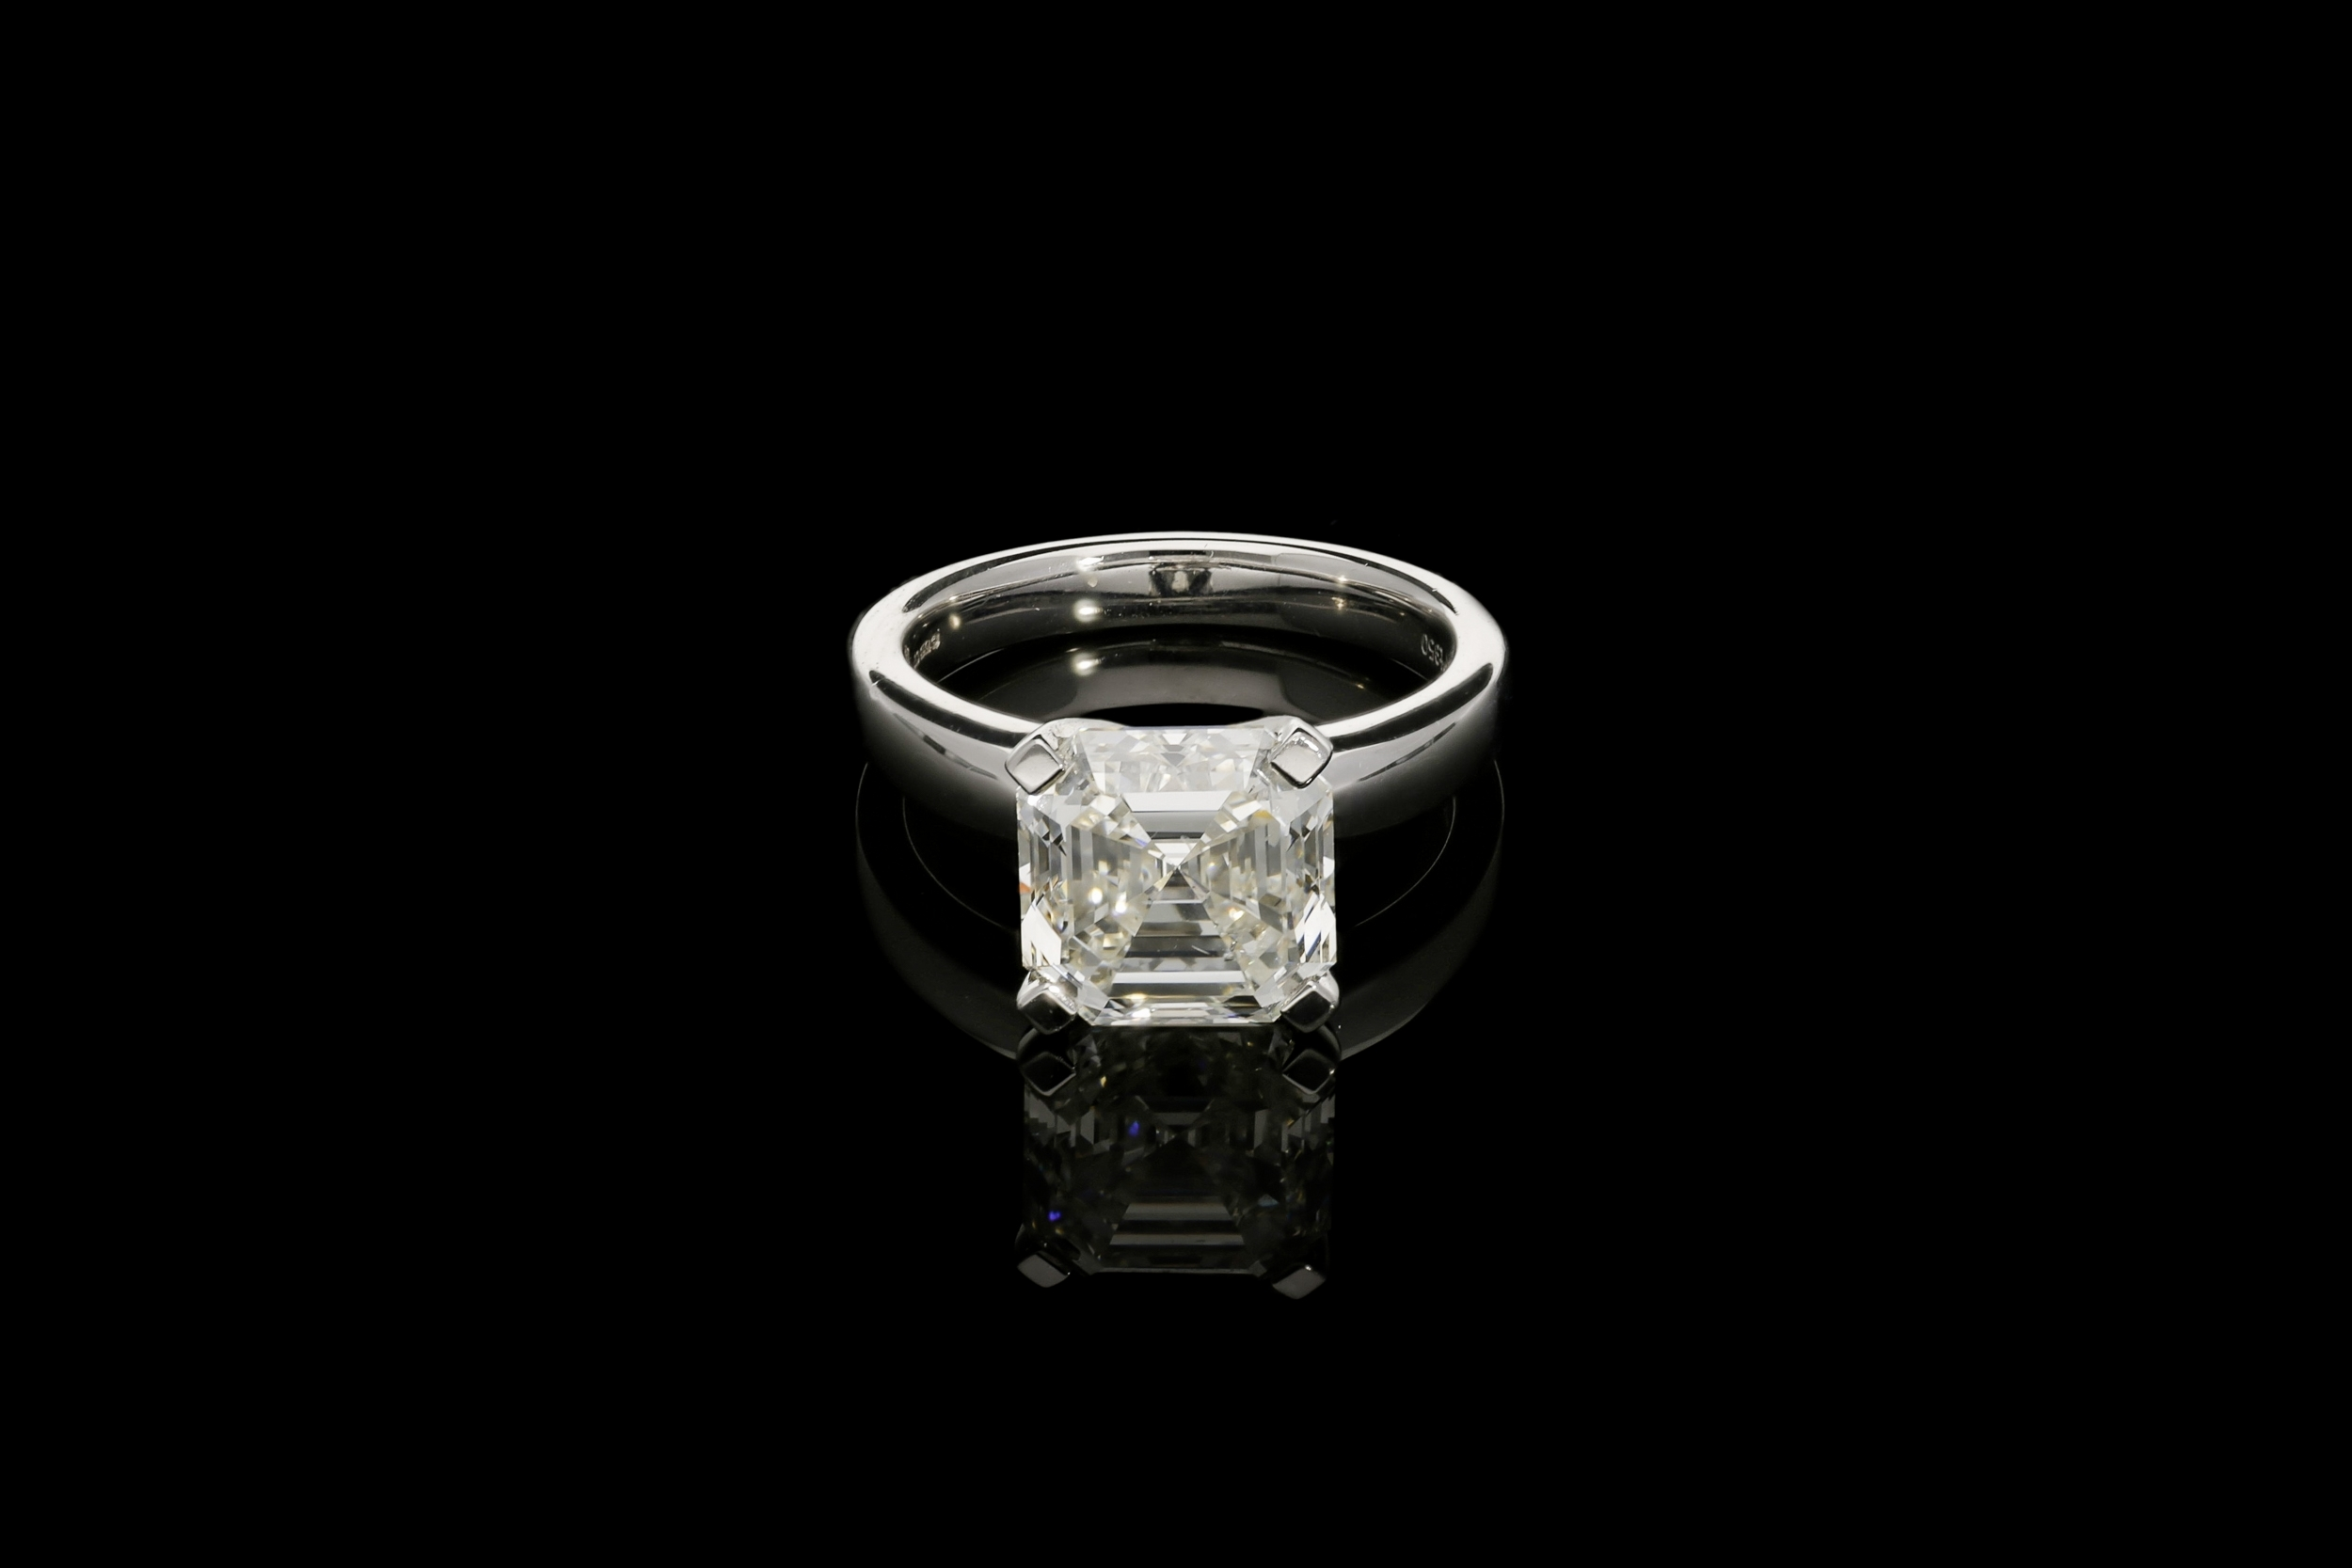 A 5.01ct Asscher cut diamond ring | £76900